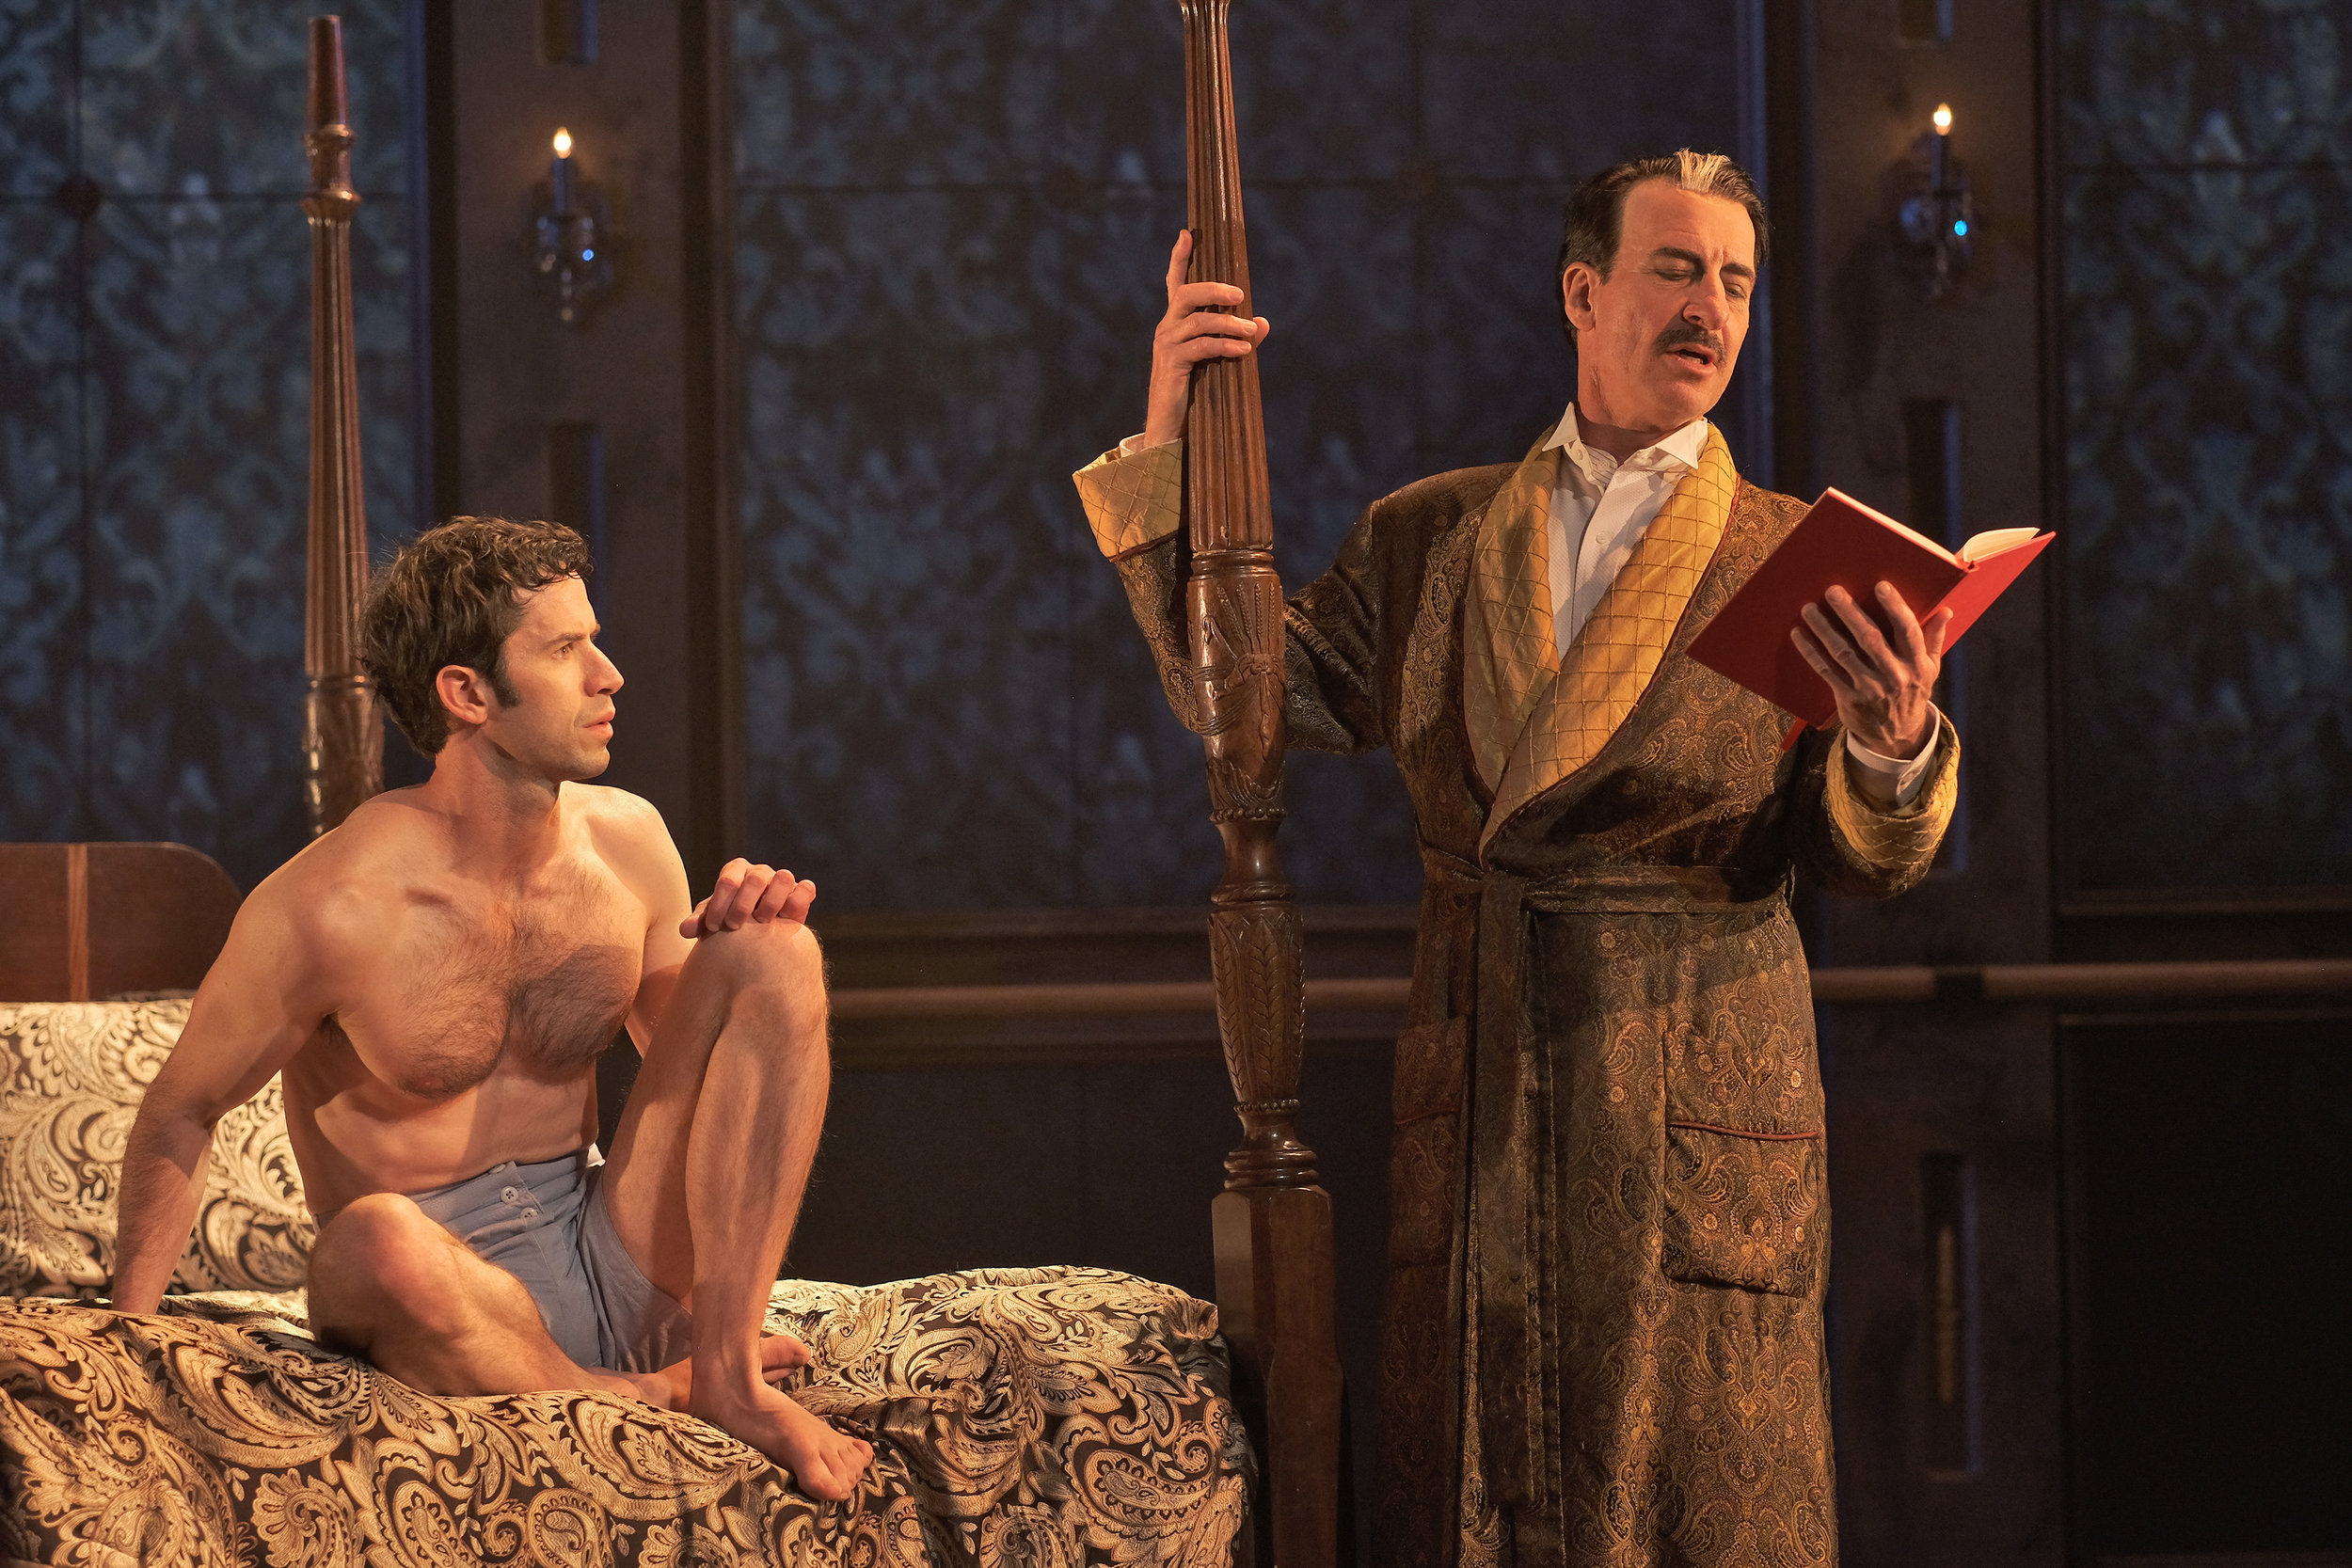 (L to R) Wyatt Fenner and Steven Epp in Immortal Longings at ZACH Theatre. Photo by Kirk Tuck